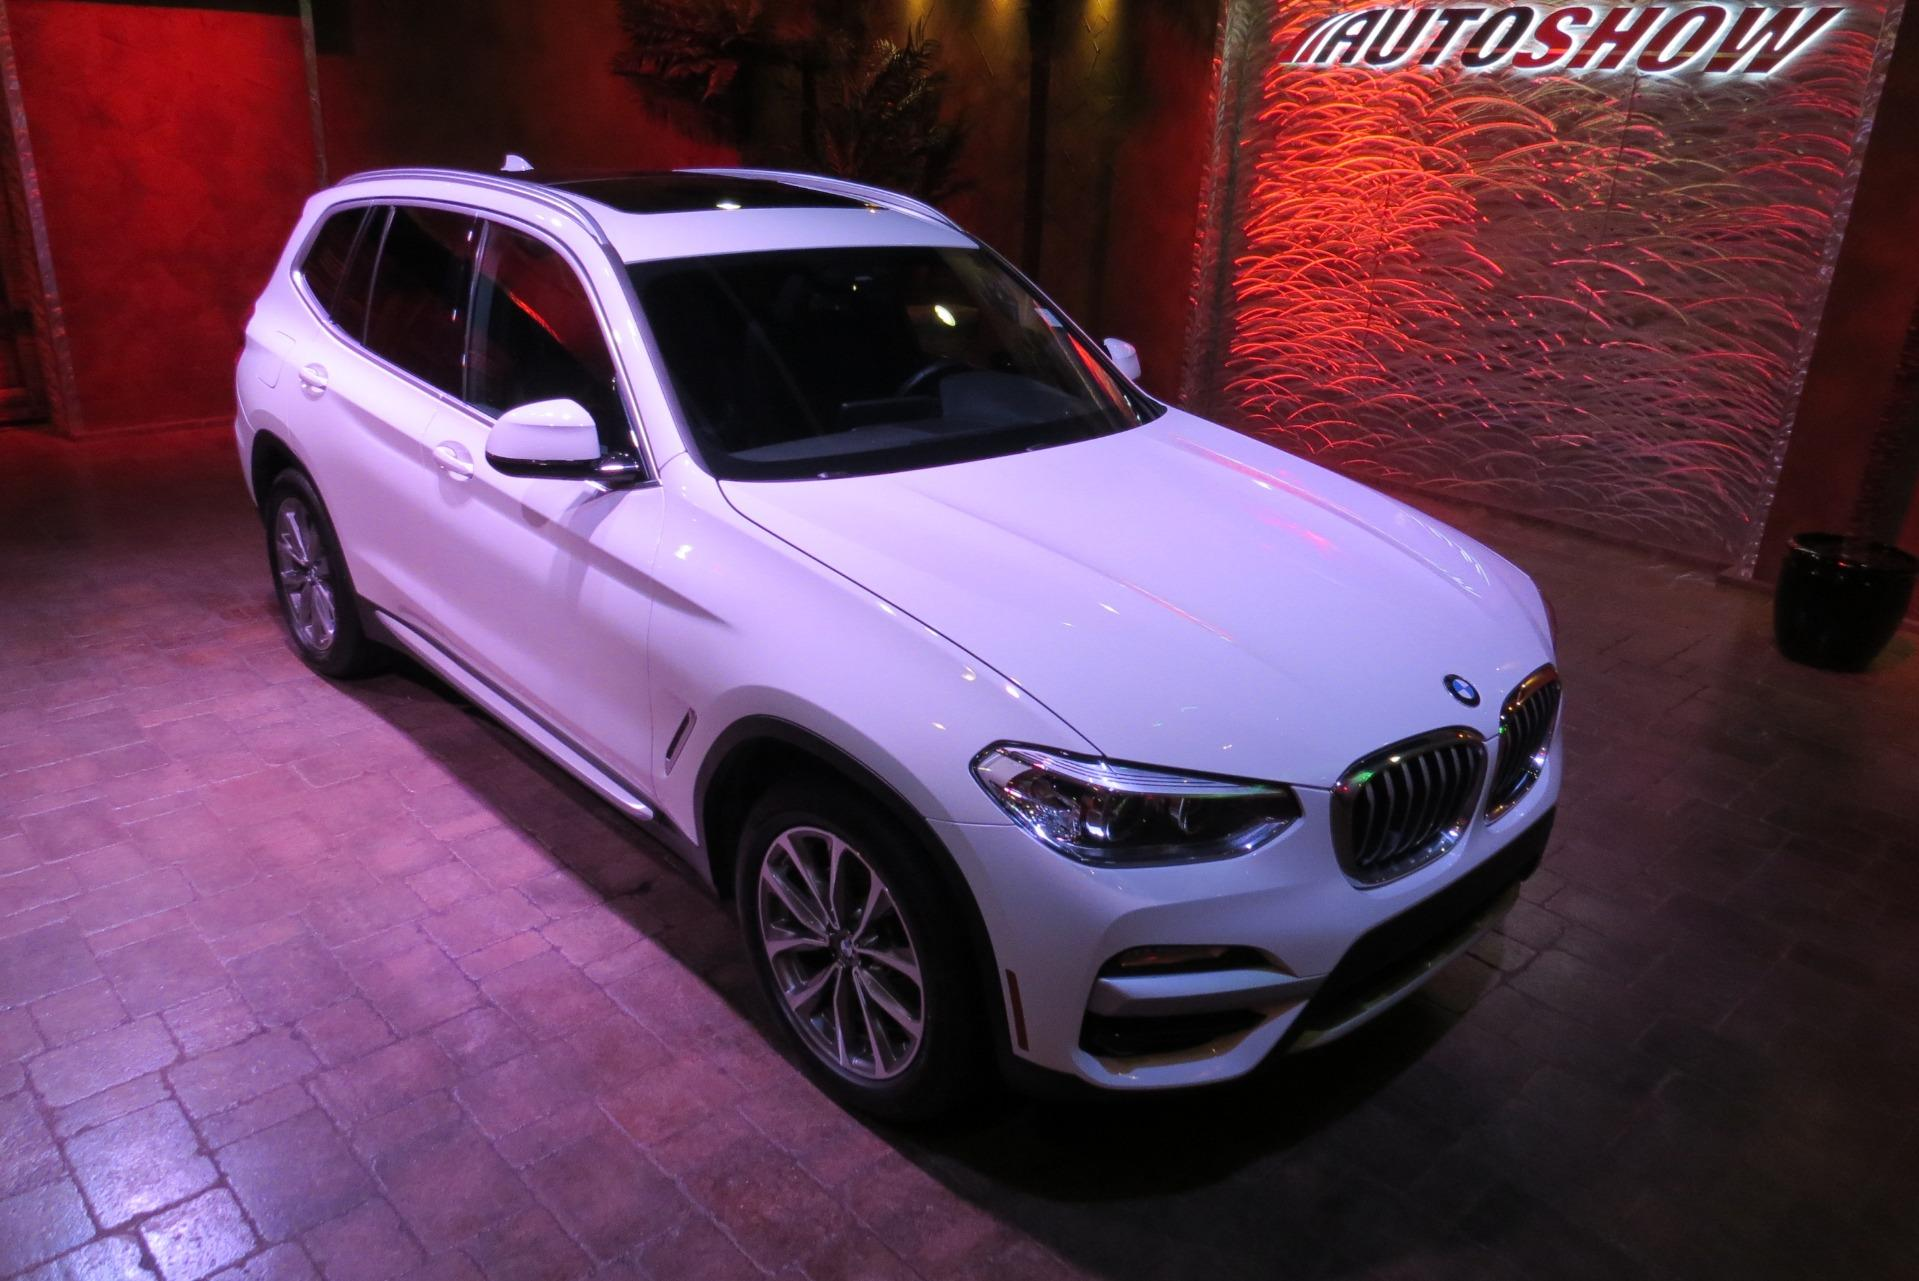 used 2019 BMW X3 car, priced at $49,800